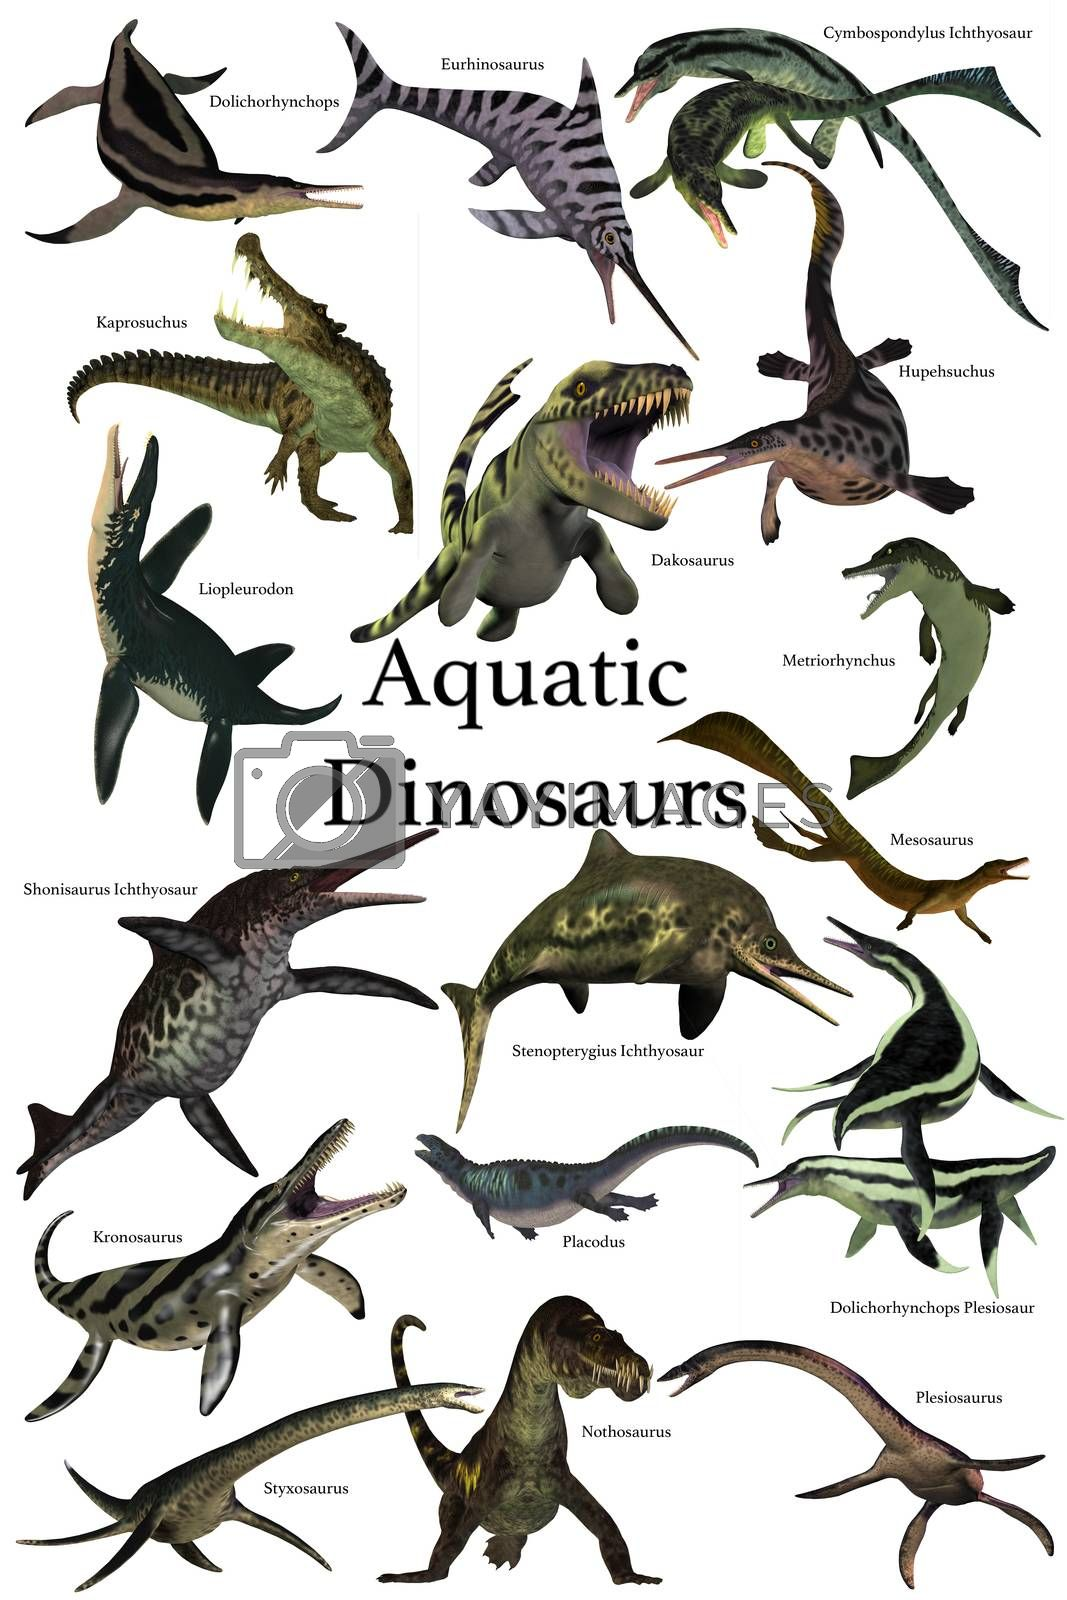 A collection of various marine reptile dinosaurs from different prehistoric periods of Earth's history.